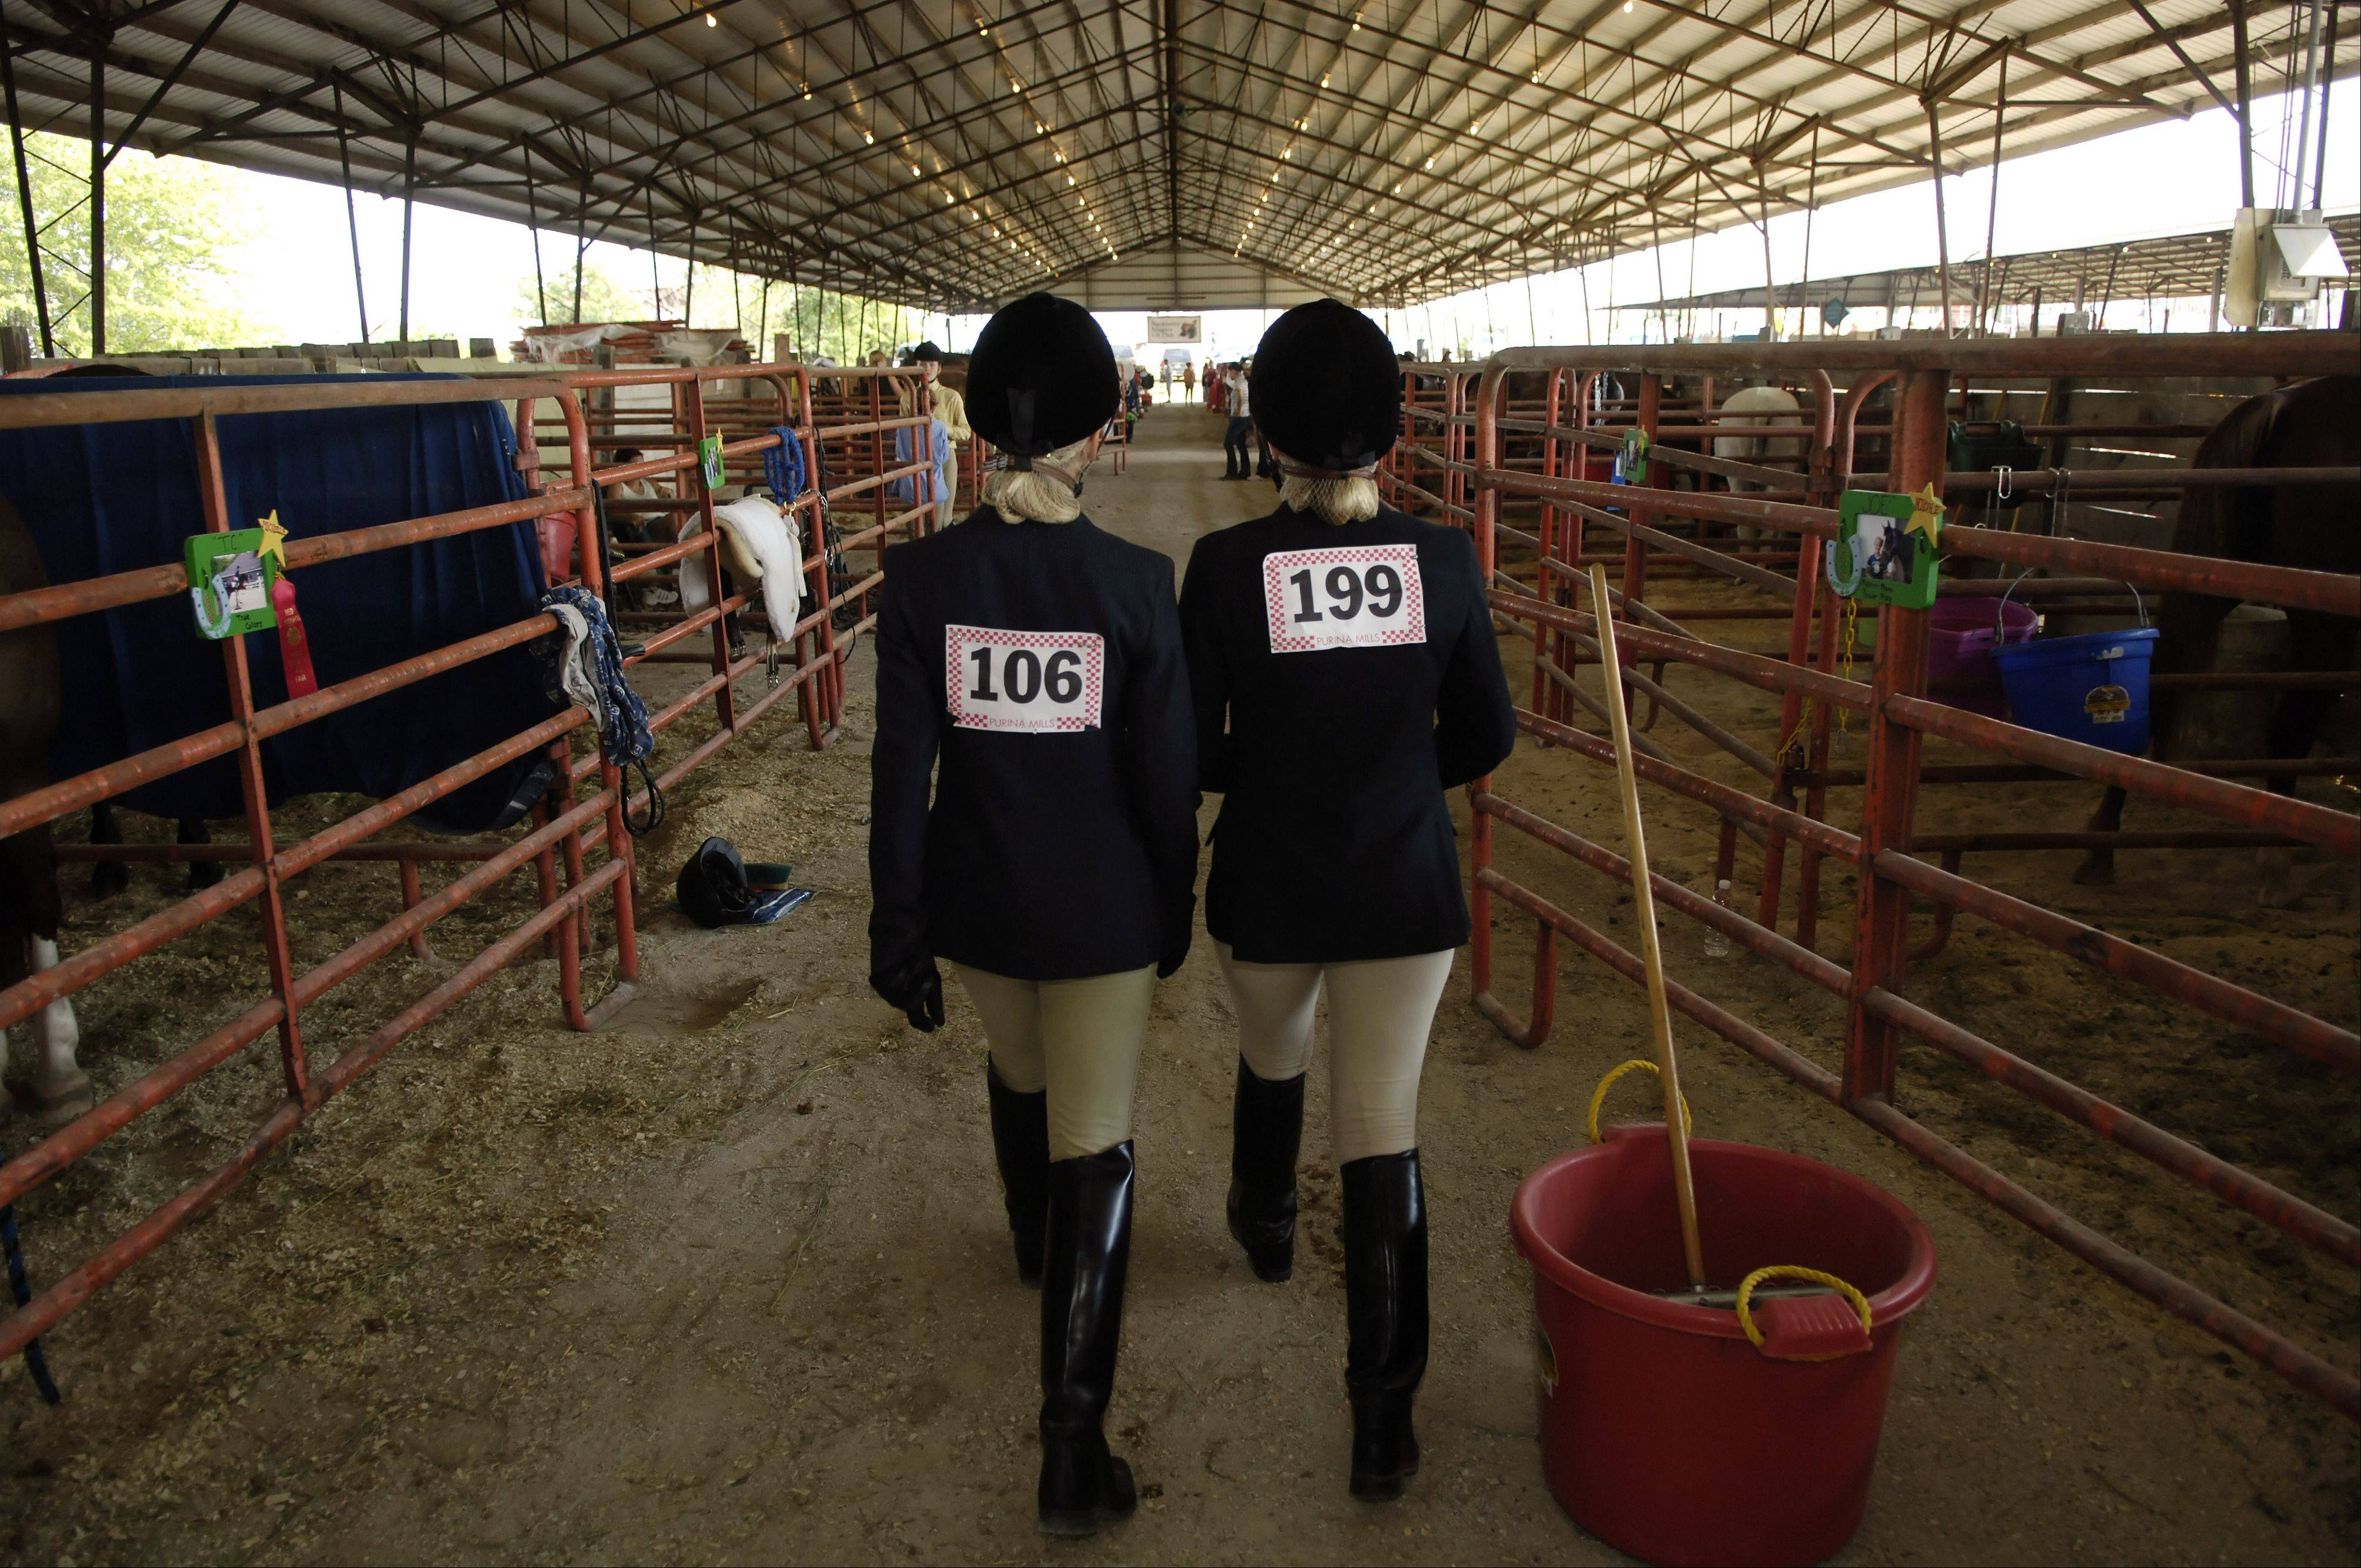 Dressed and ready to go, Alyssa Peterson, 13, left, and Allison Weir, 14, both of St. Charles, head toward the check-in booth in the horse barn at the Kane County Fair to see if their turn to compete is coming up.